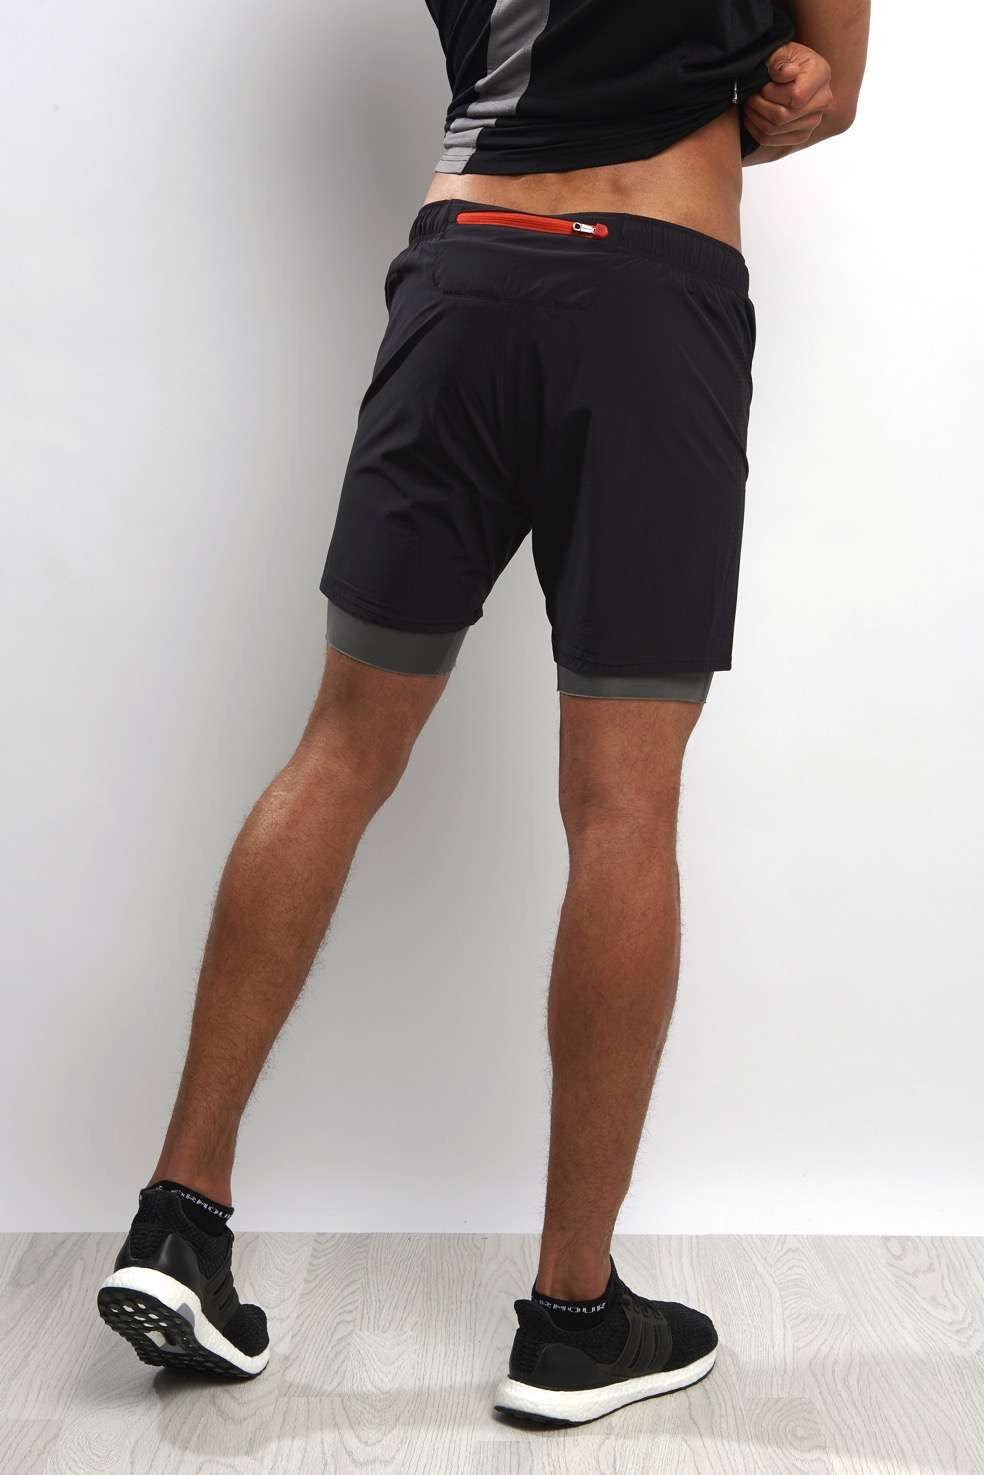 Ashmei 2 in 1 Shorts - Black image 2 - The Sports Edit